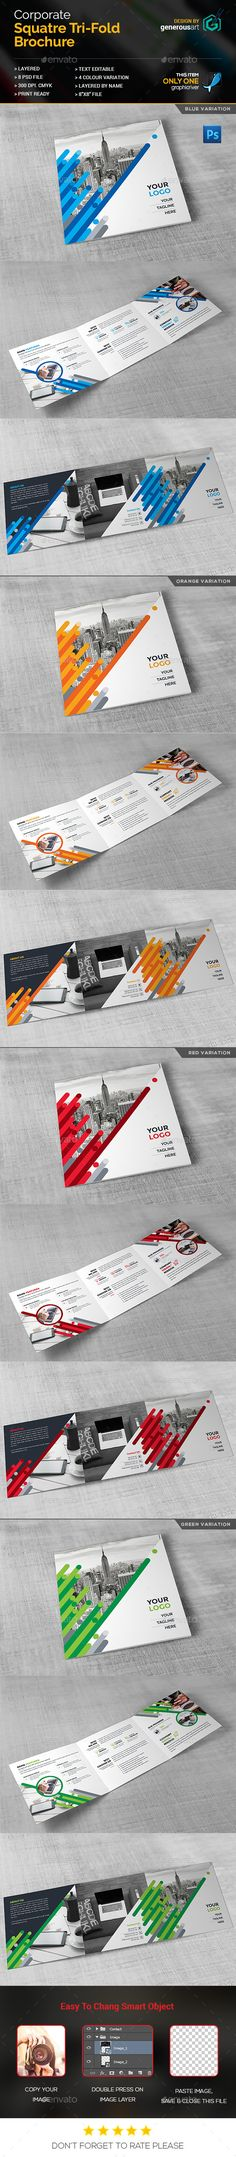 Business Square Tri-Fold Brochure Template PSD. Download here: http://graphicriver.net/item/business-square-trifold/16703282?ref=ksioks